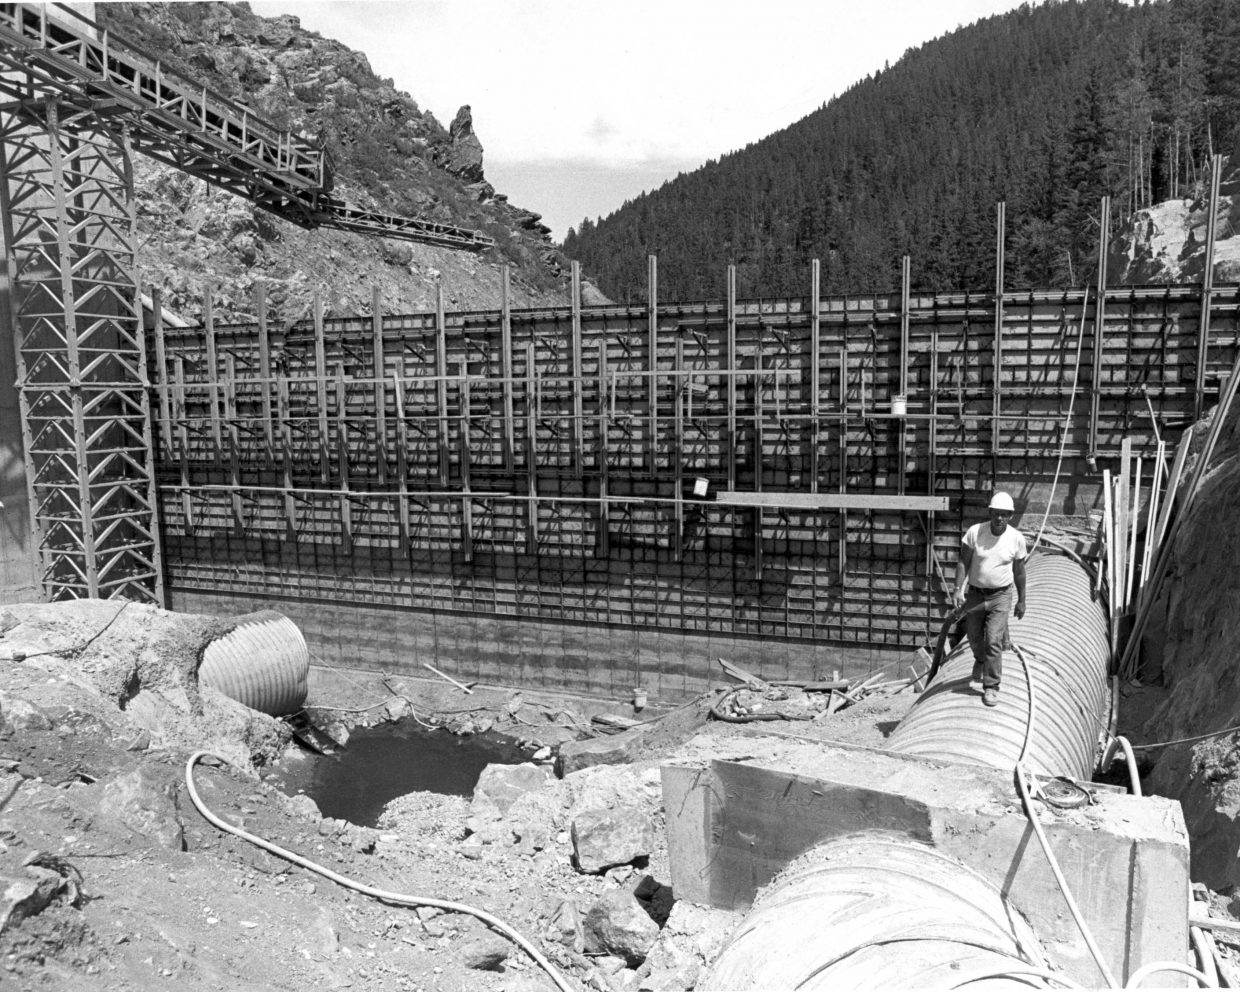 Construction of Stagecoach dam in August 1988.